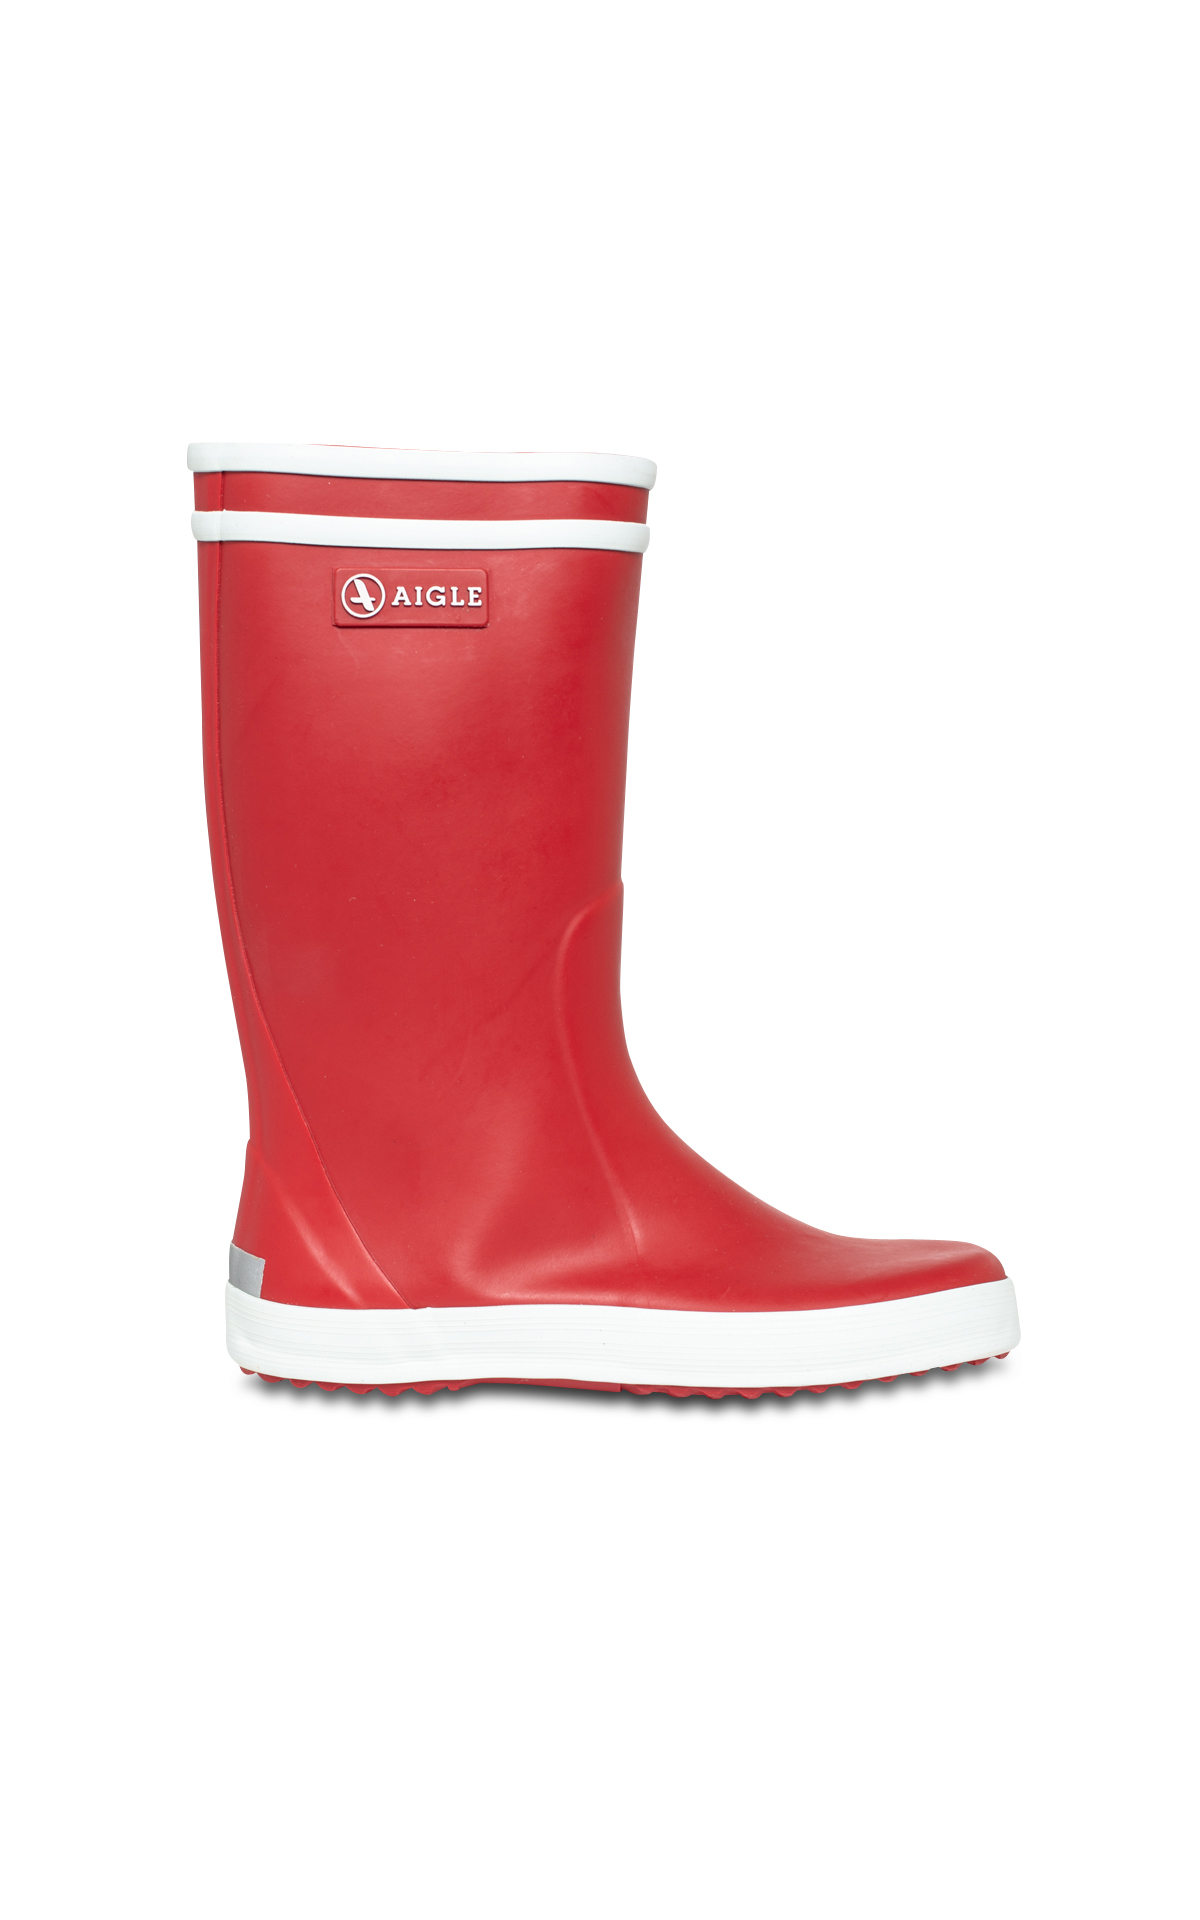 Aigle Lolly Pop wellington boots